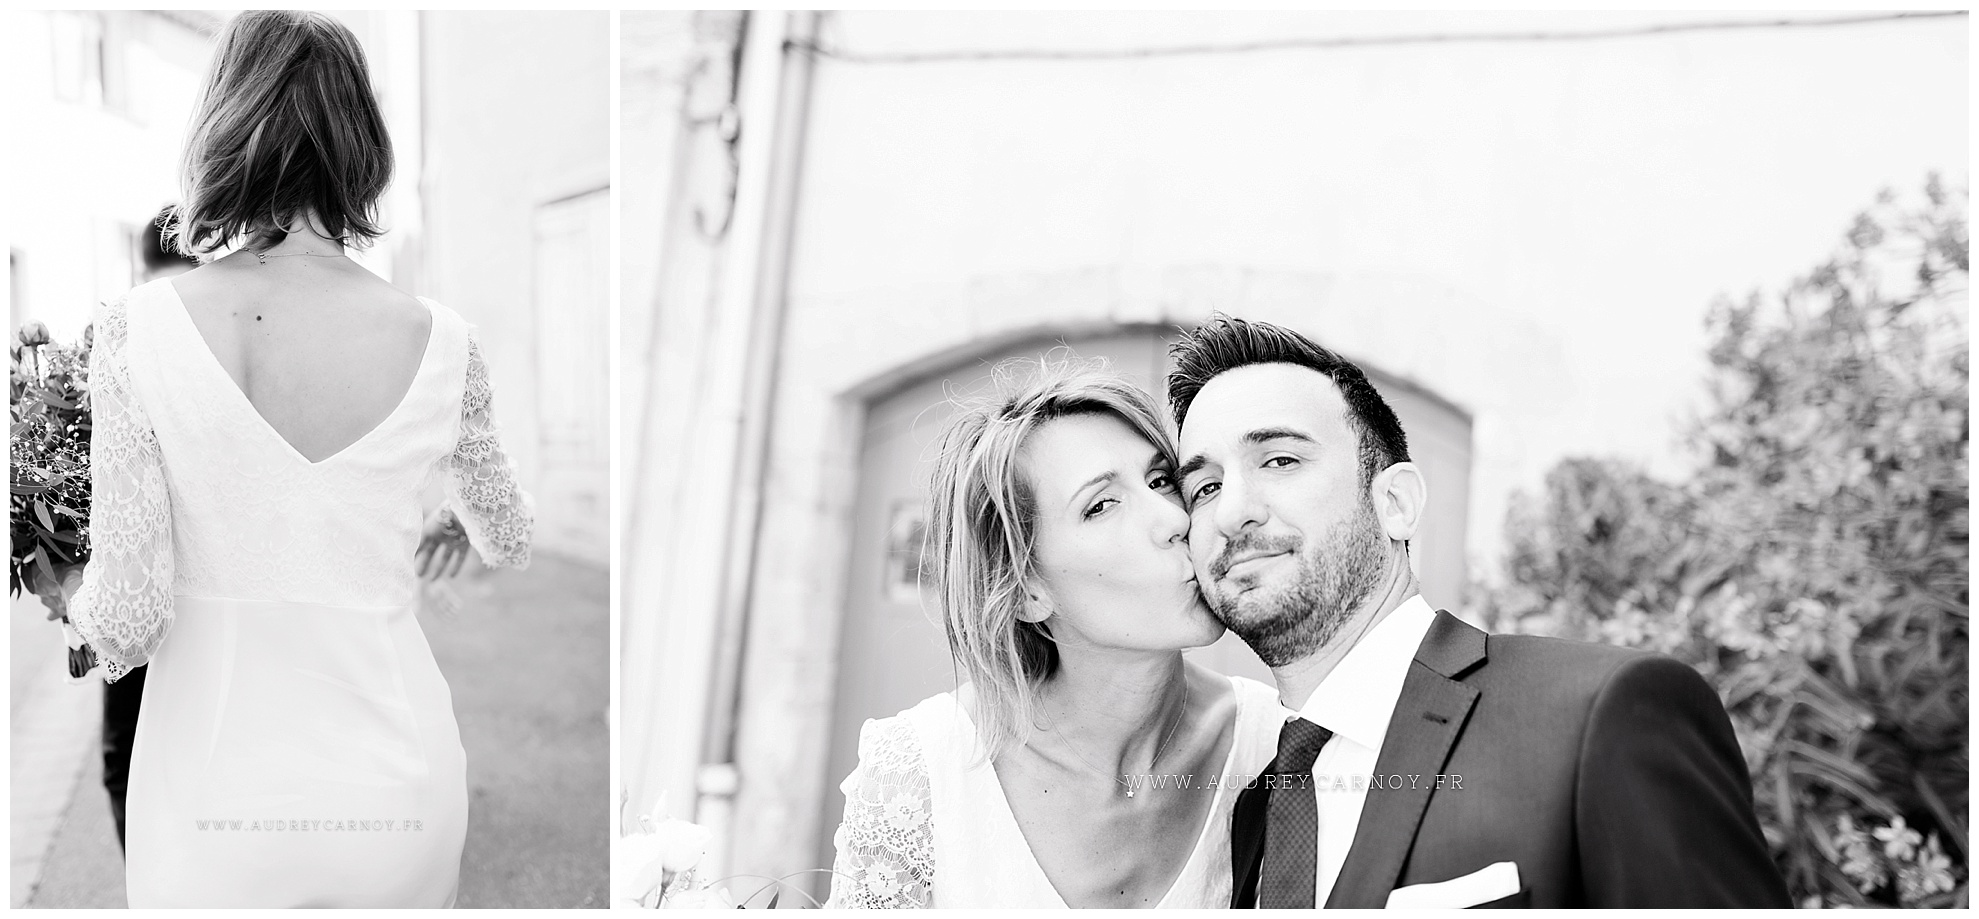 Mariage Pertuis | Laurence & Anthony 12